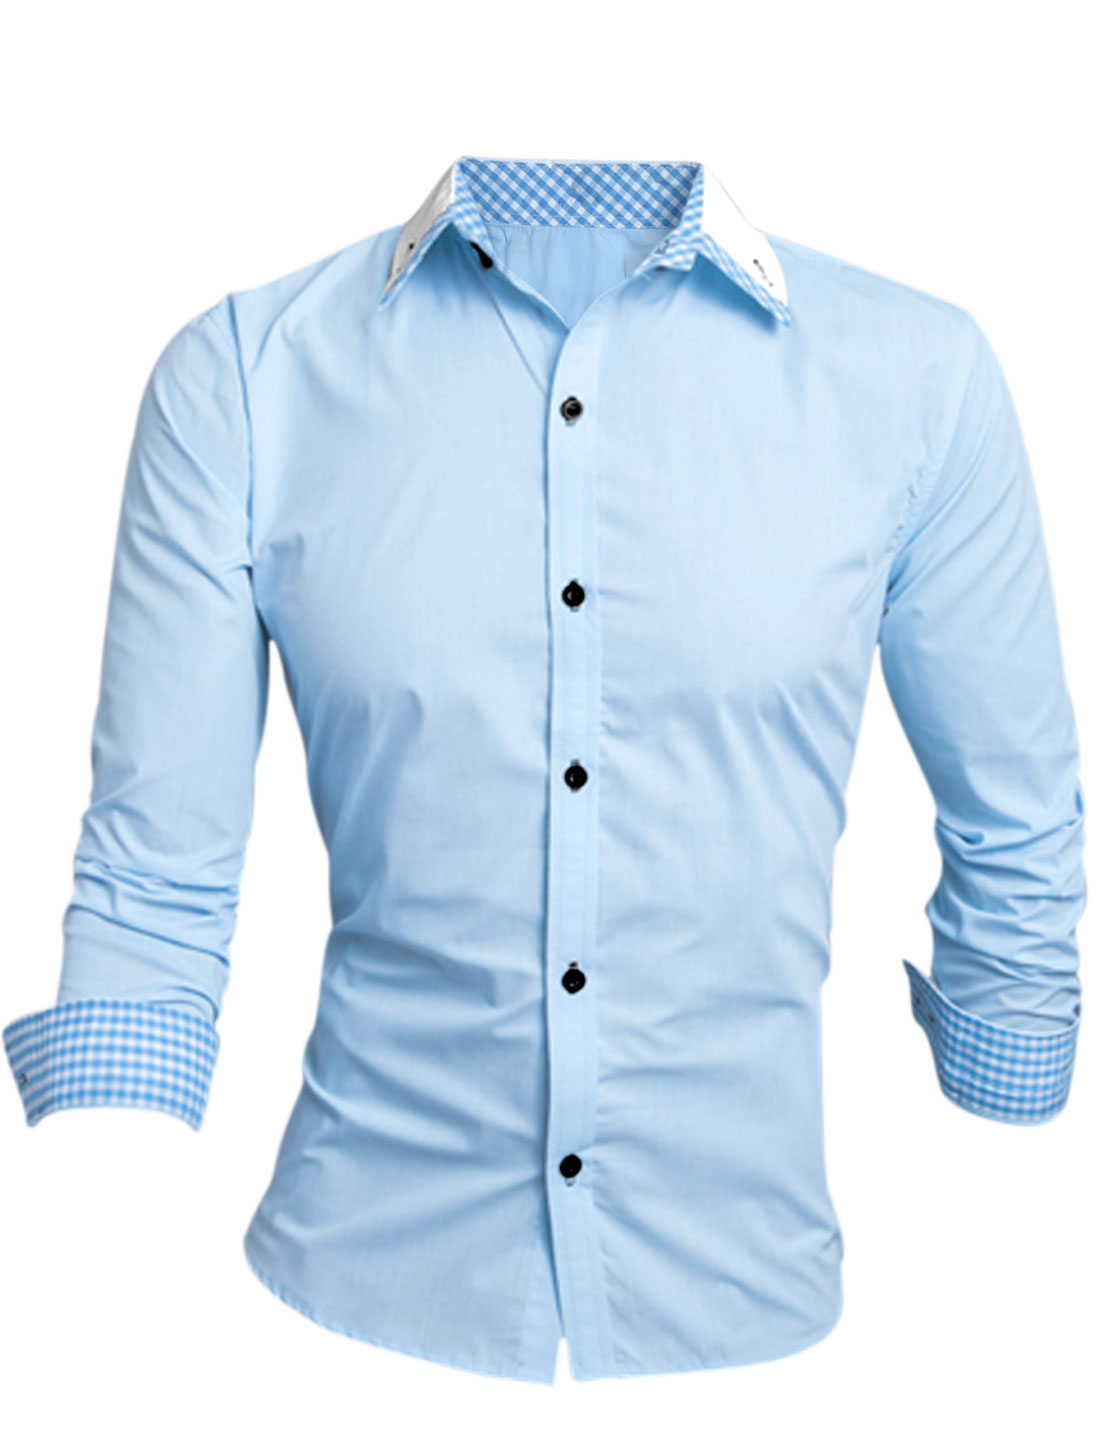 Men Point Collar Checks Detail Button Cuffs Leisure Shirt Blue Light Blue M